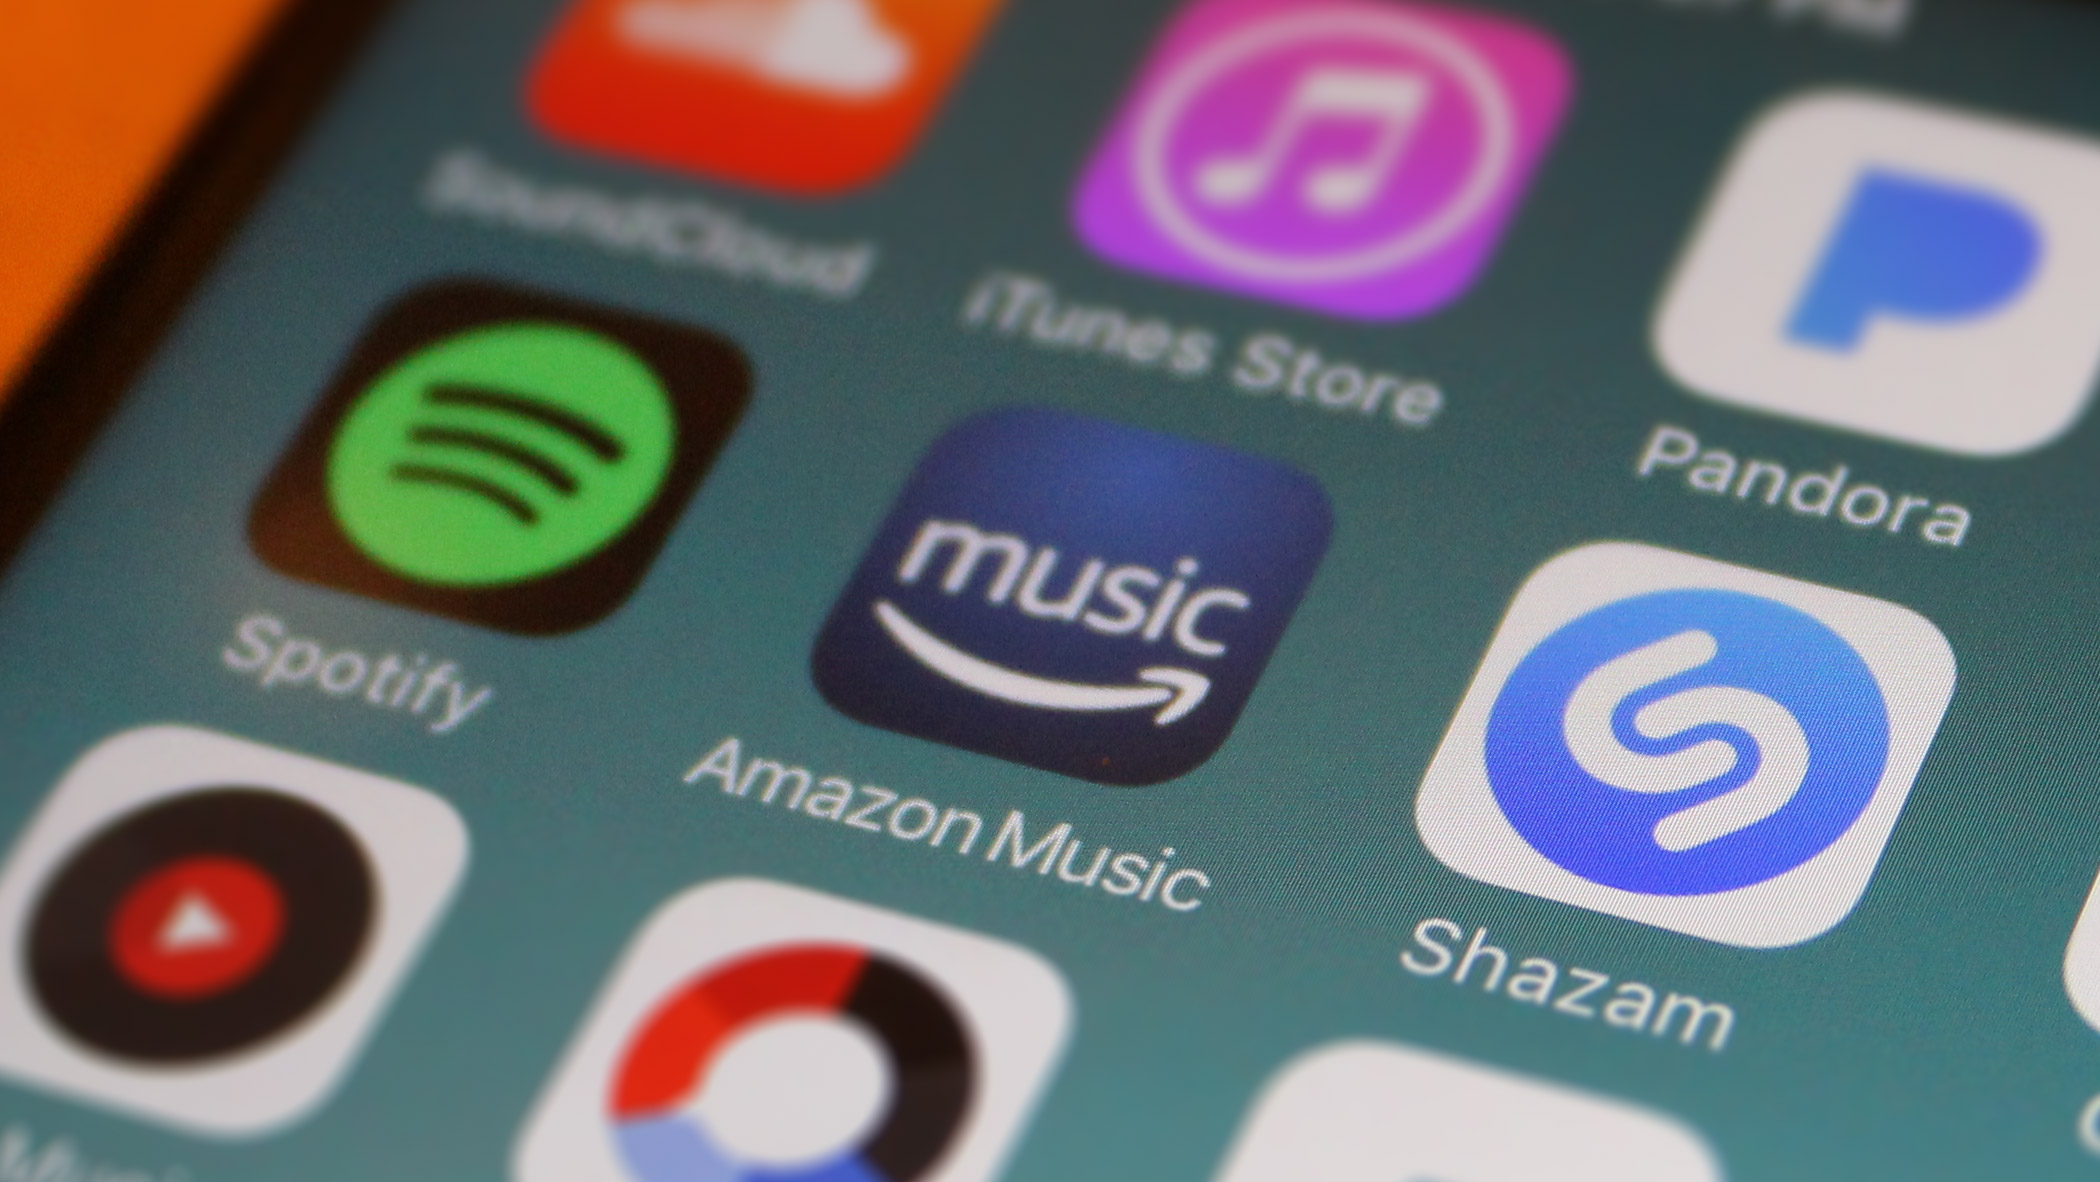 Amazon Music's app adds hands-free listening, courtesy of Alexa